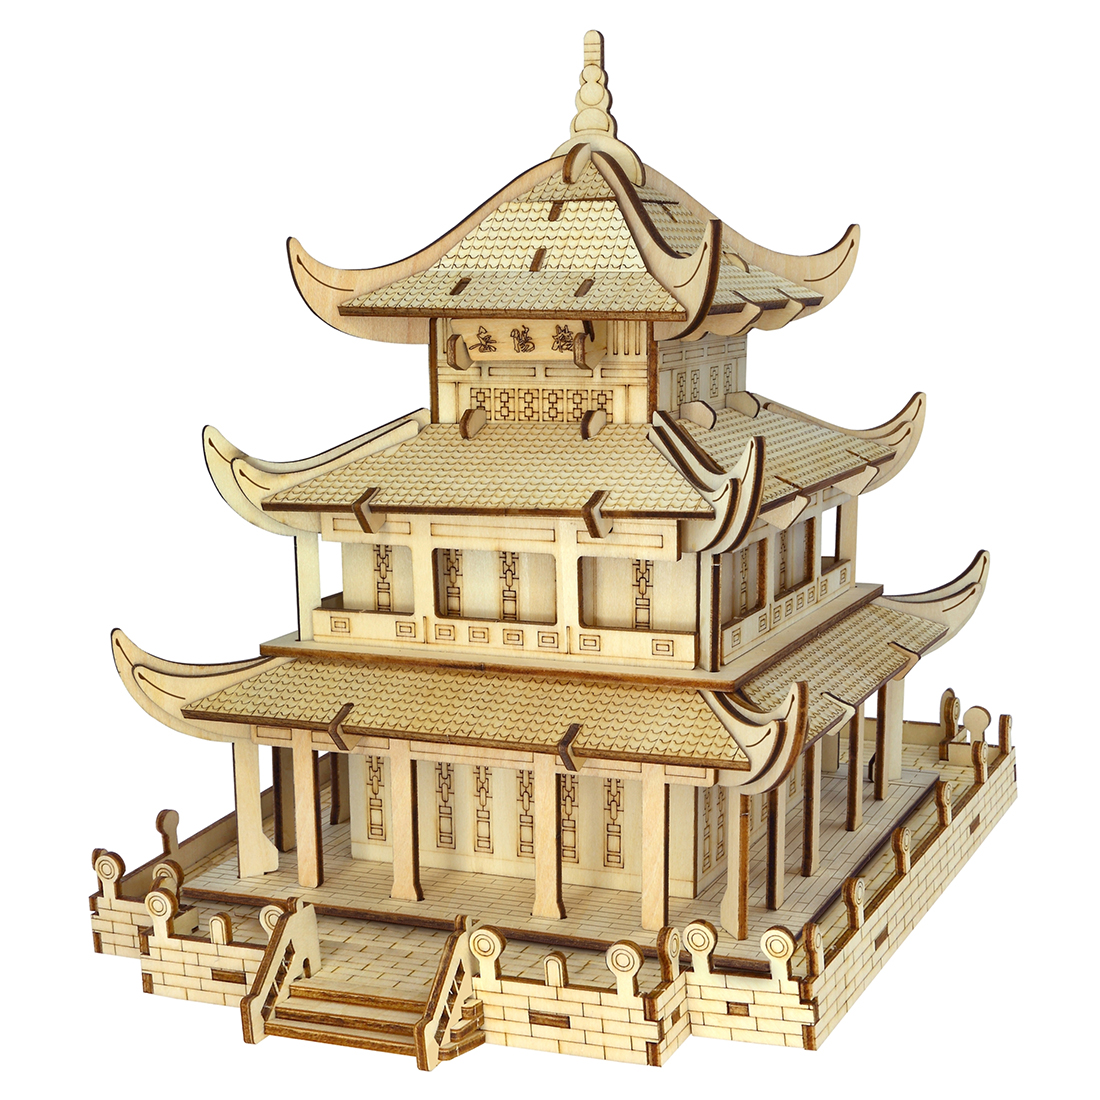 High-Precision Laser Cutting Puzzle 3D Wooden Chinese Style Theme Jigsaw Model For Children - Yueyang Tower/Yellow Crane Tower